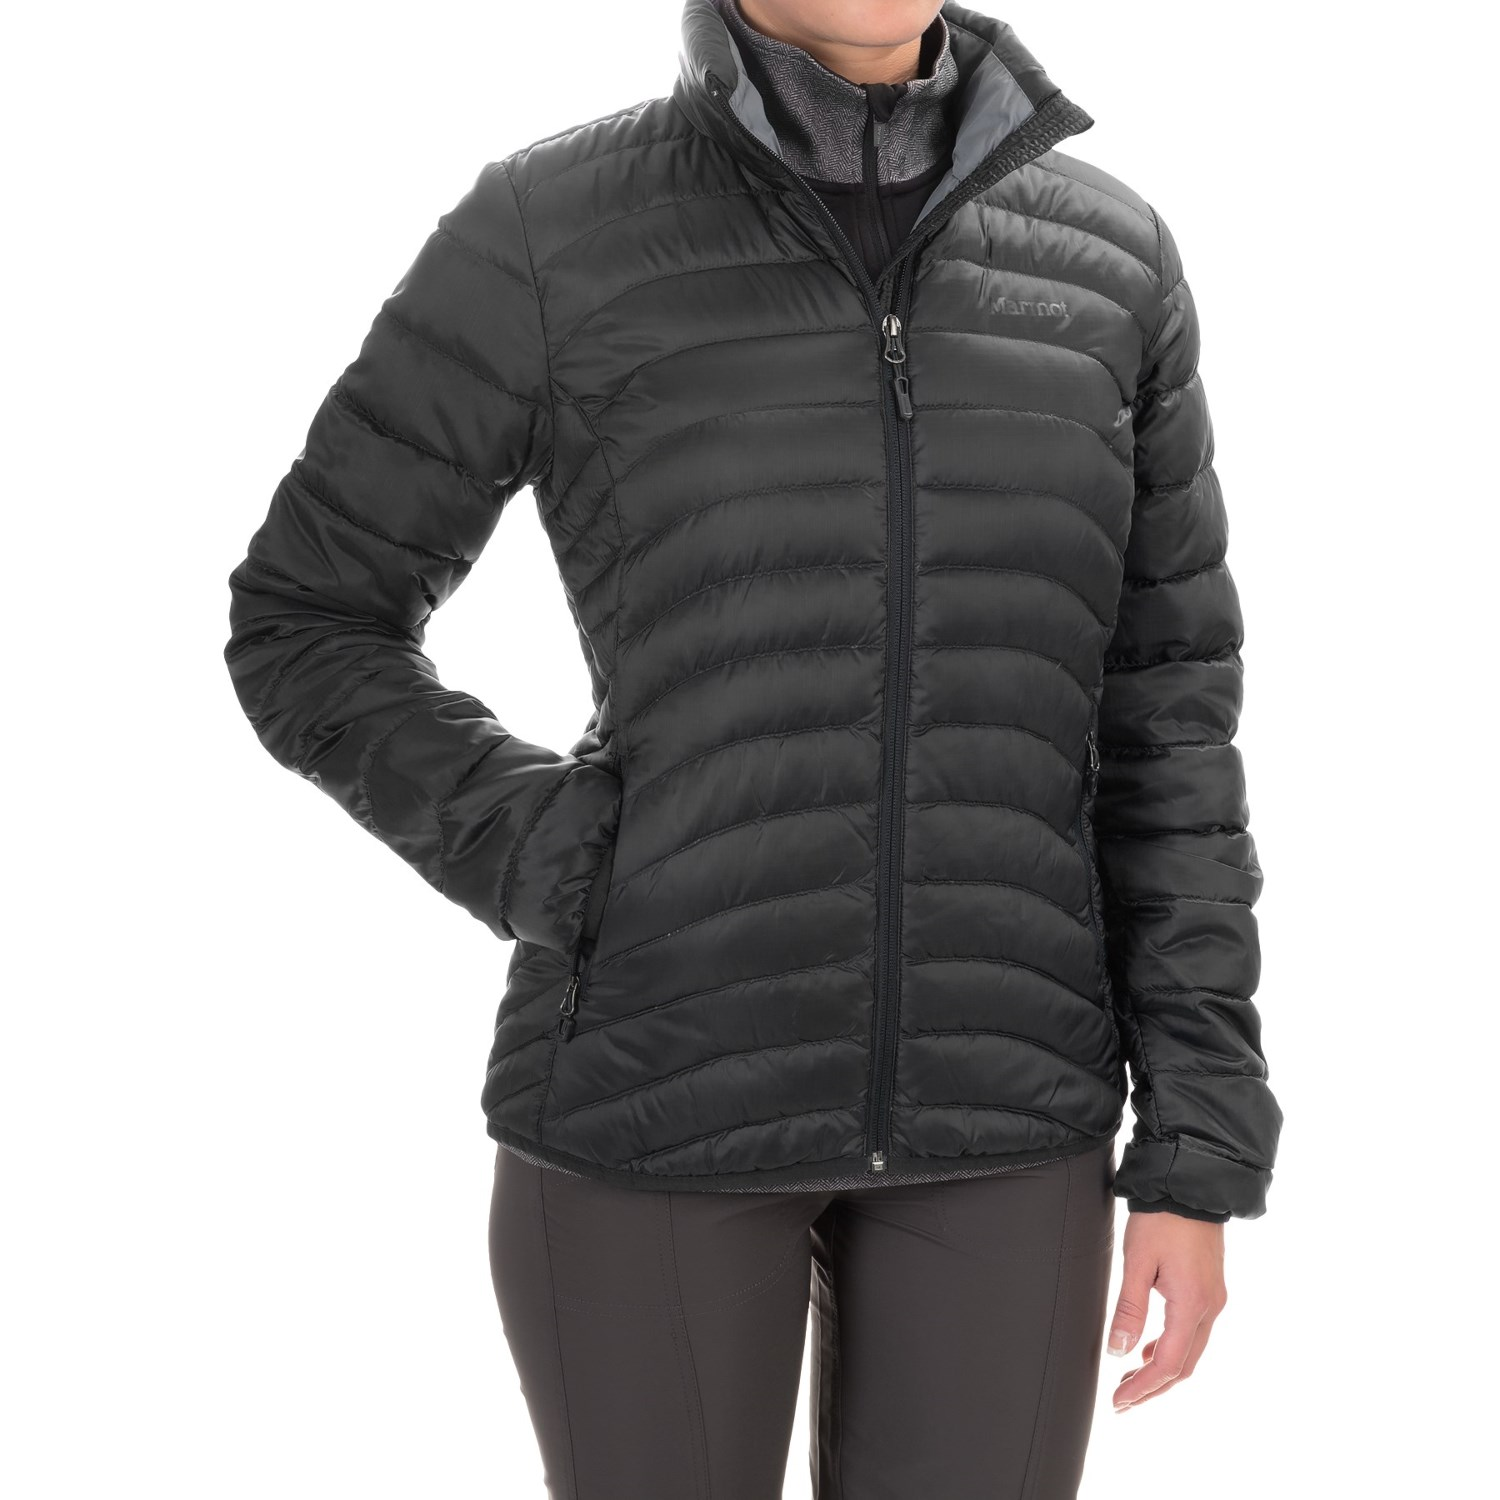 Down Jacket Fill Power Jackets Review